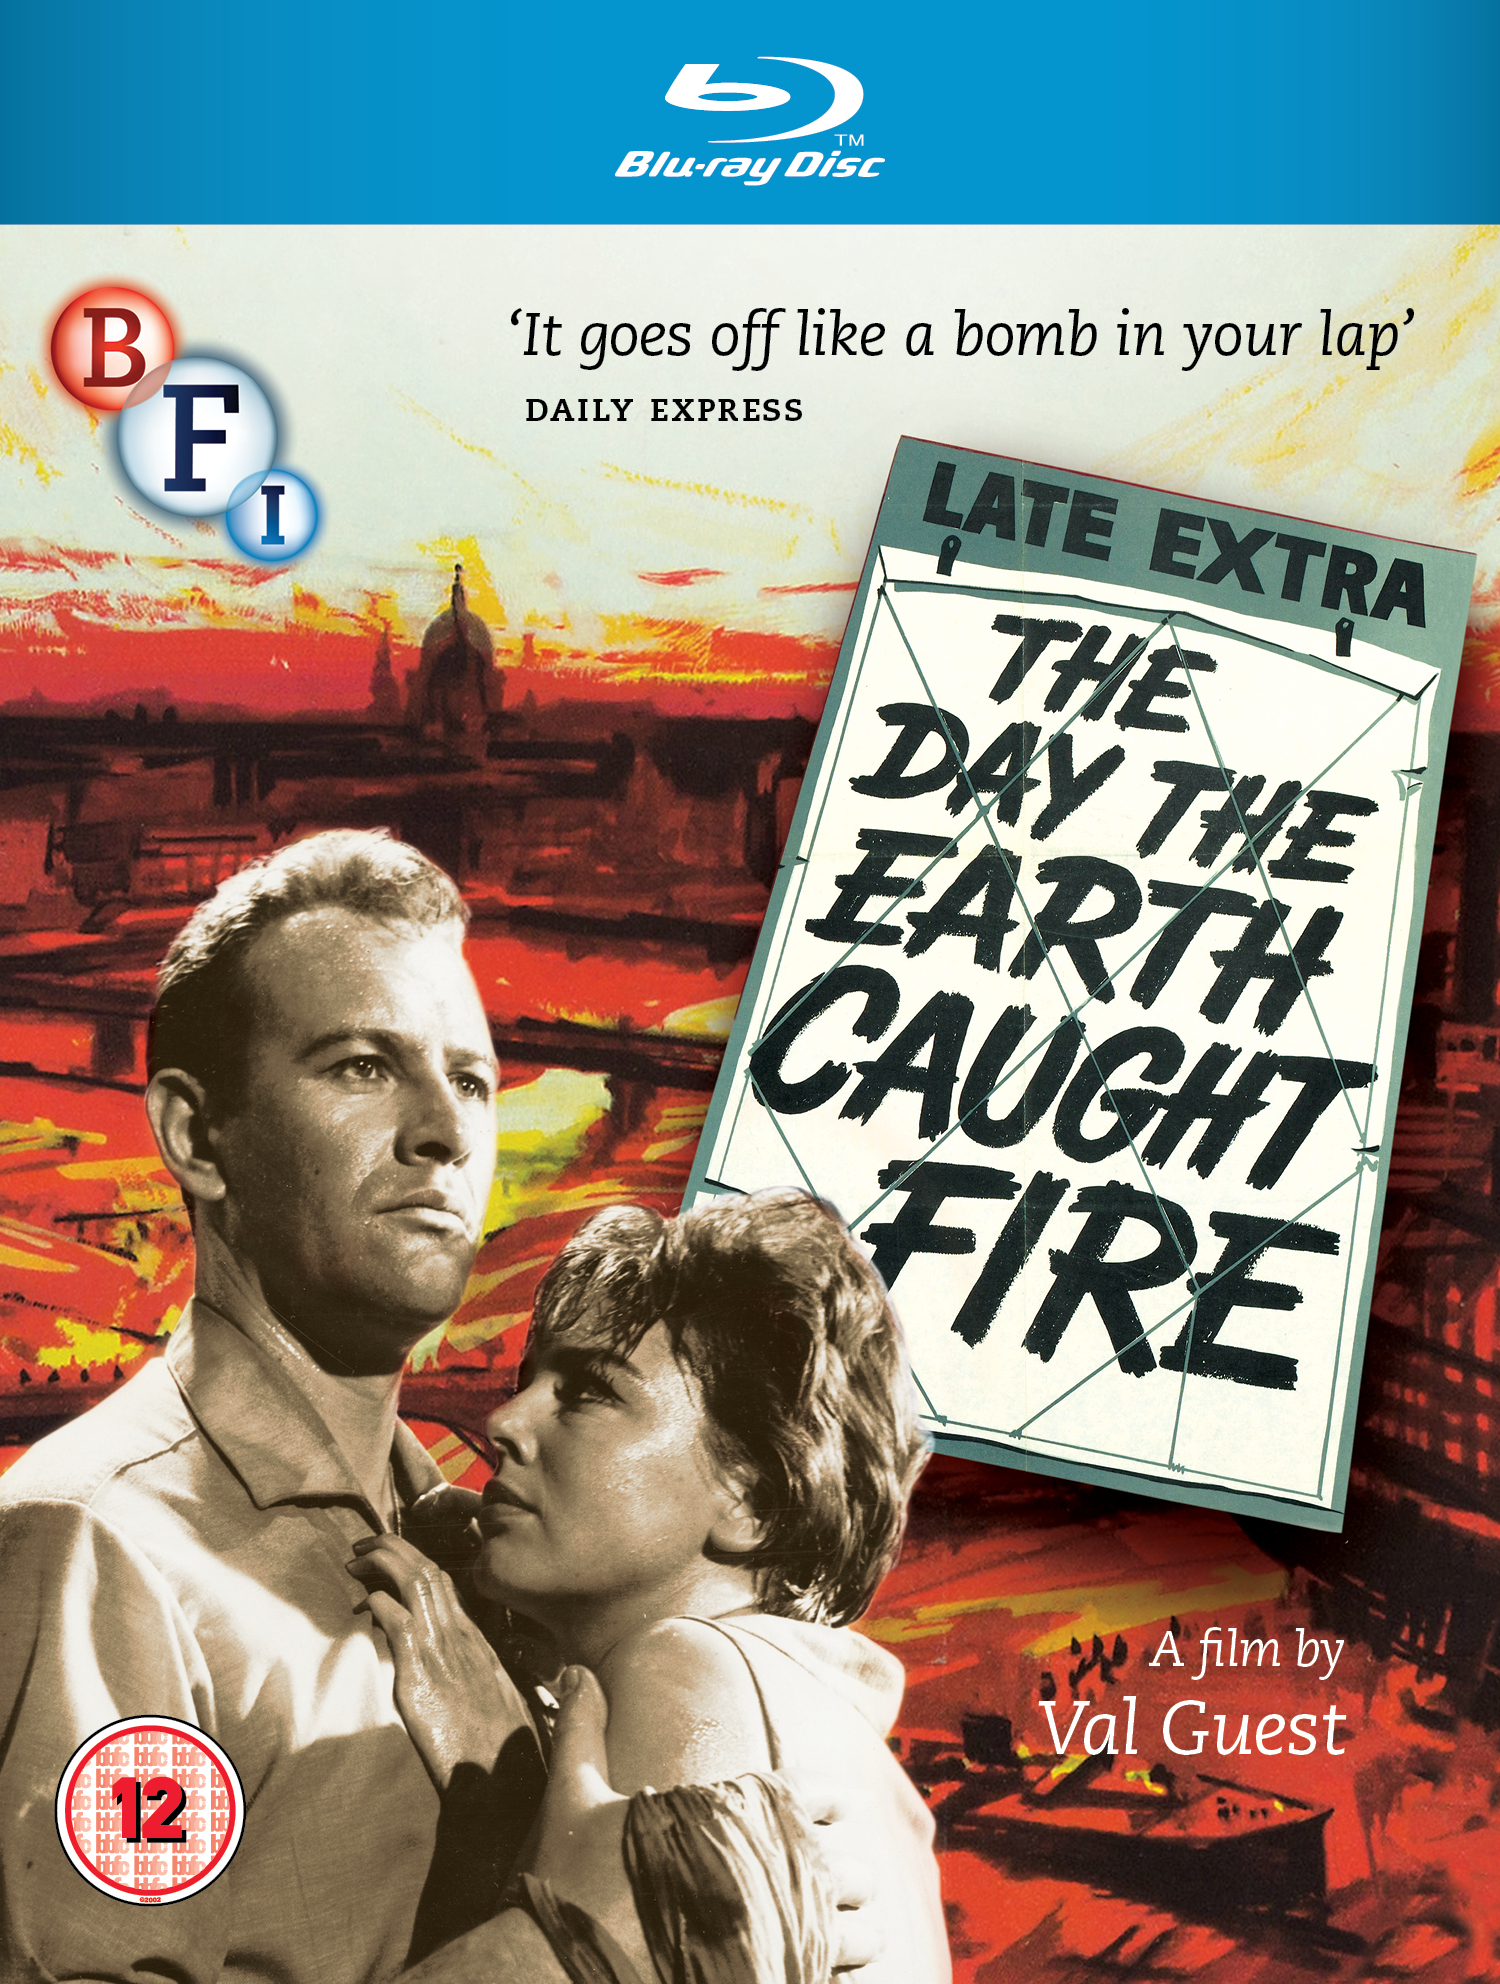 Buy Day the Earth Caught Fire, The (Blu-ray)